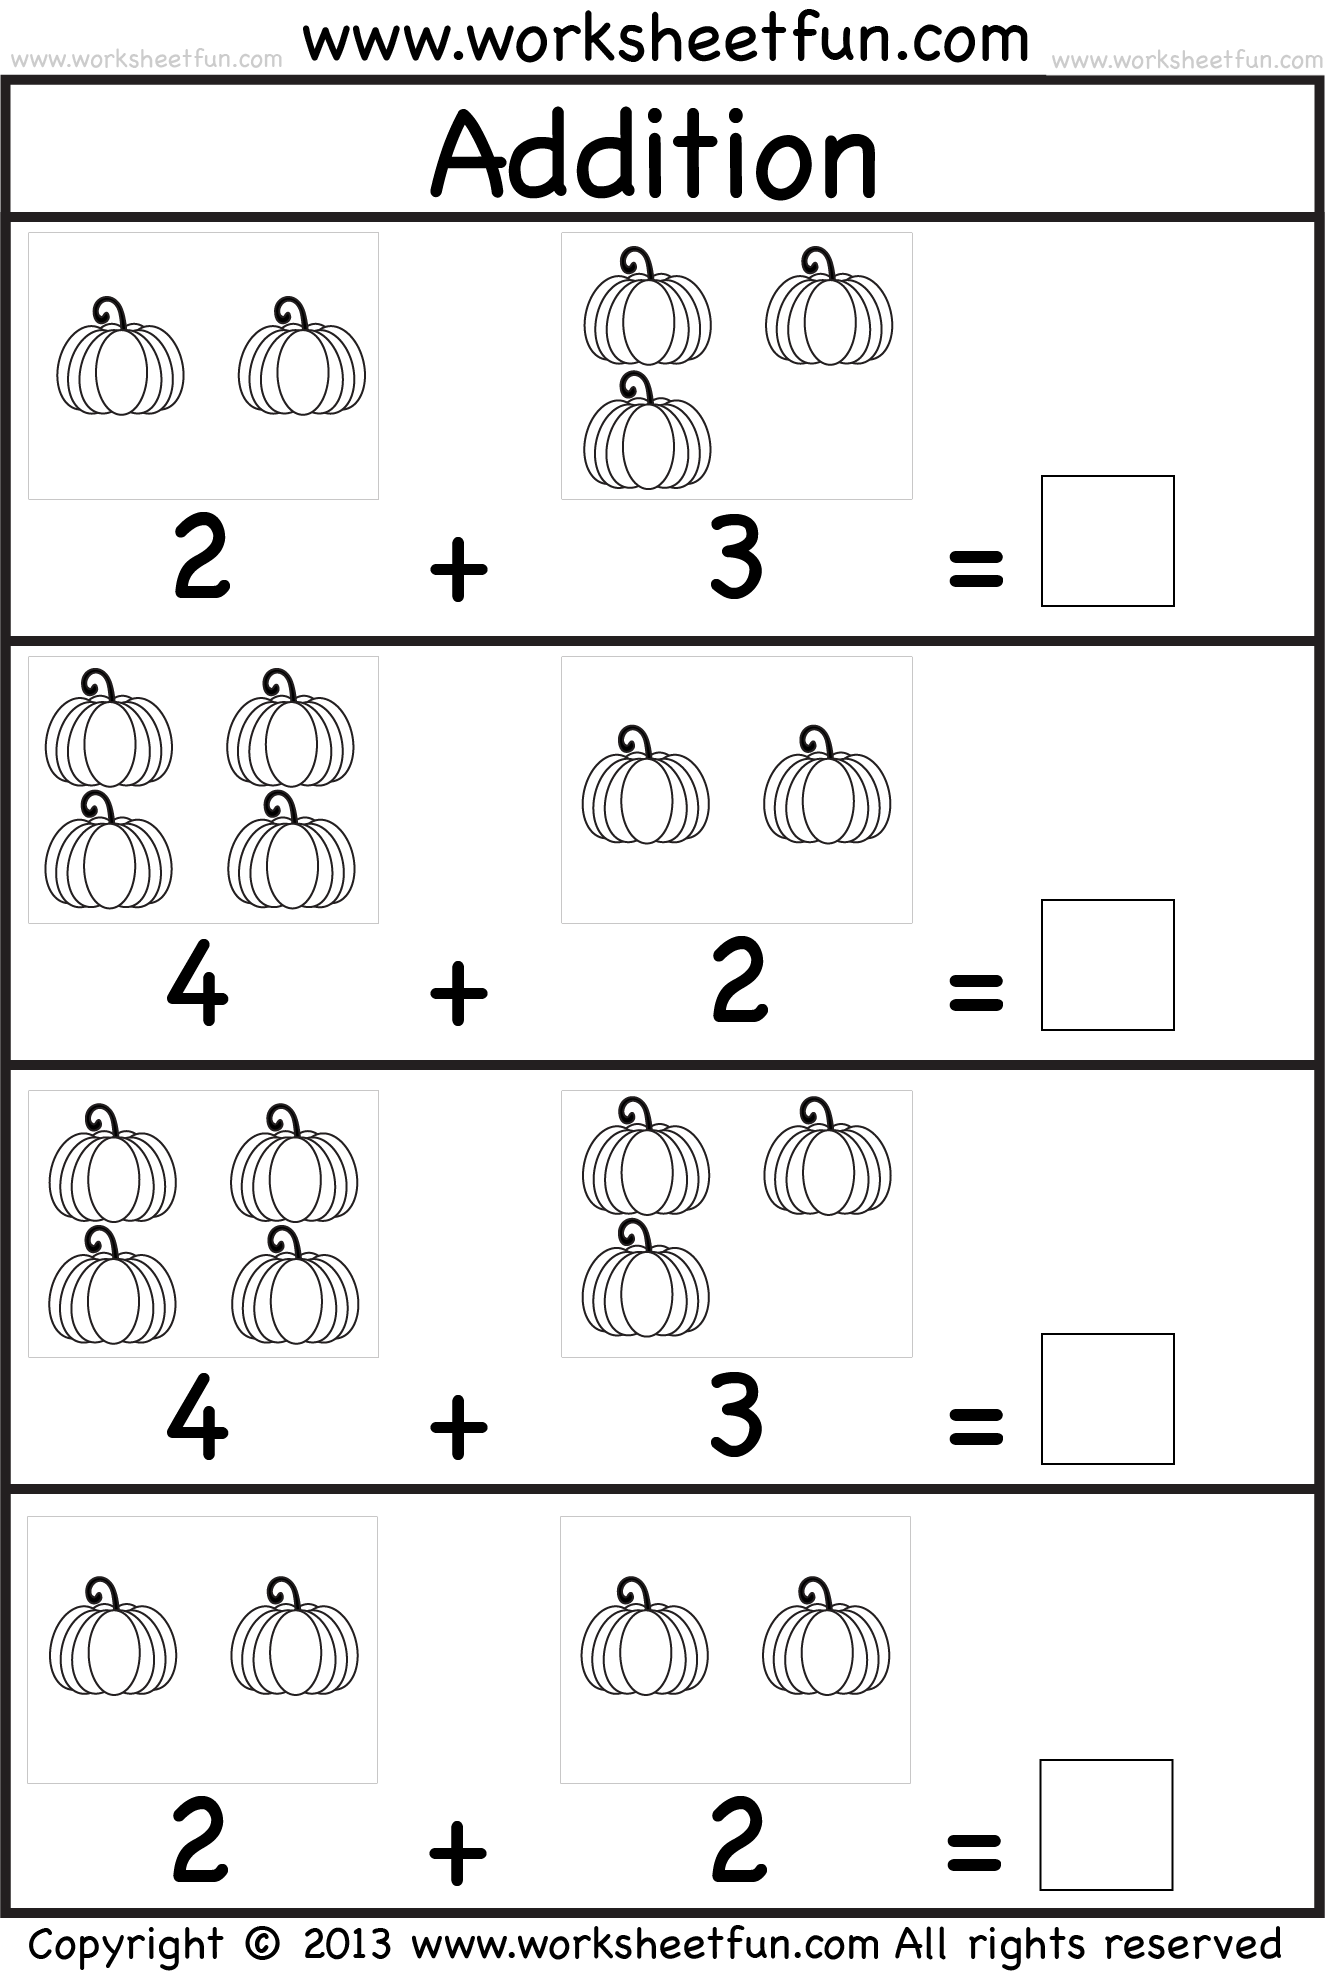 Pin By Jennifer Allenbach On Kindergarten Pinterest Math